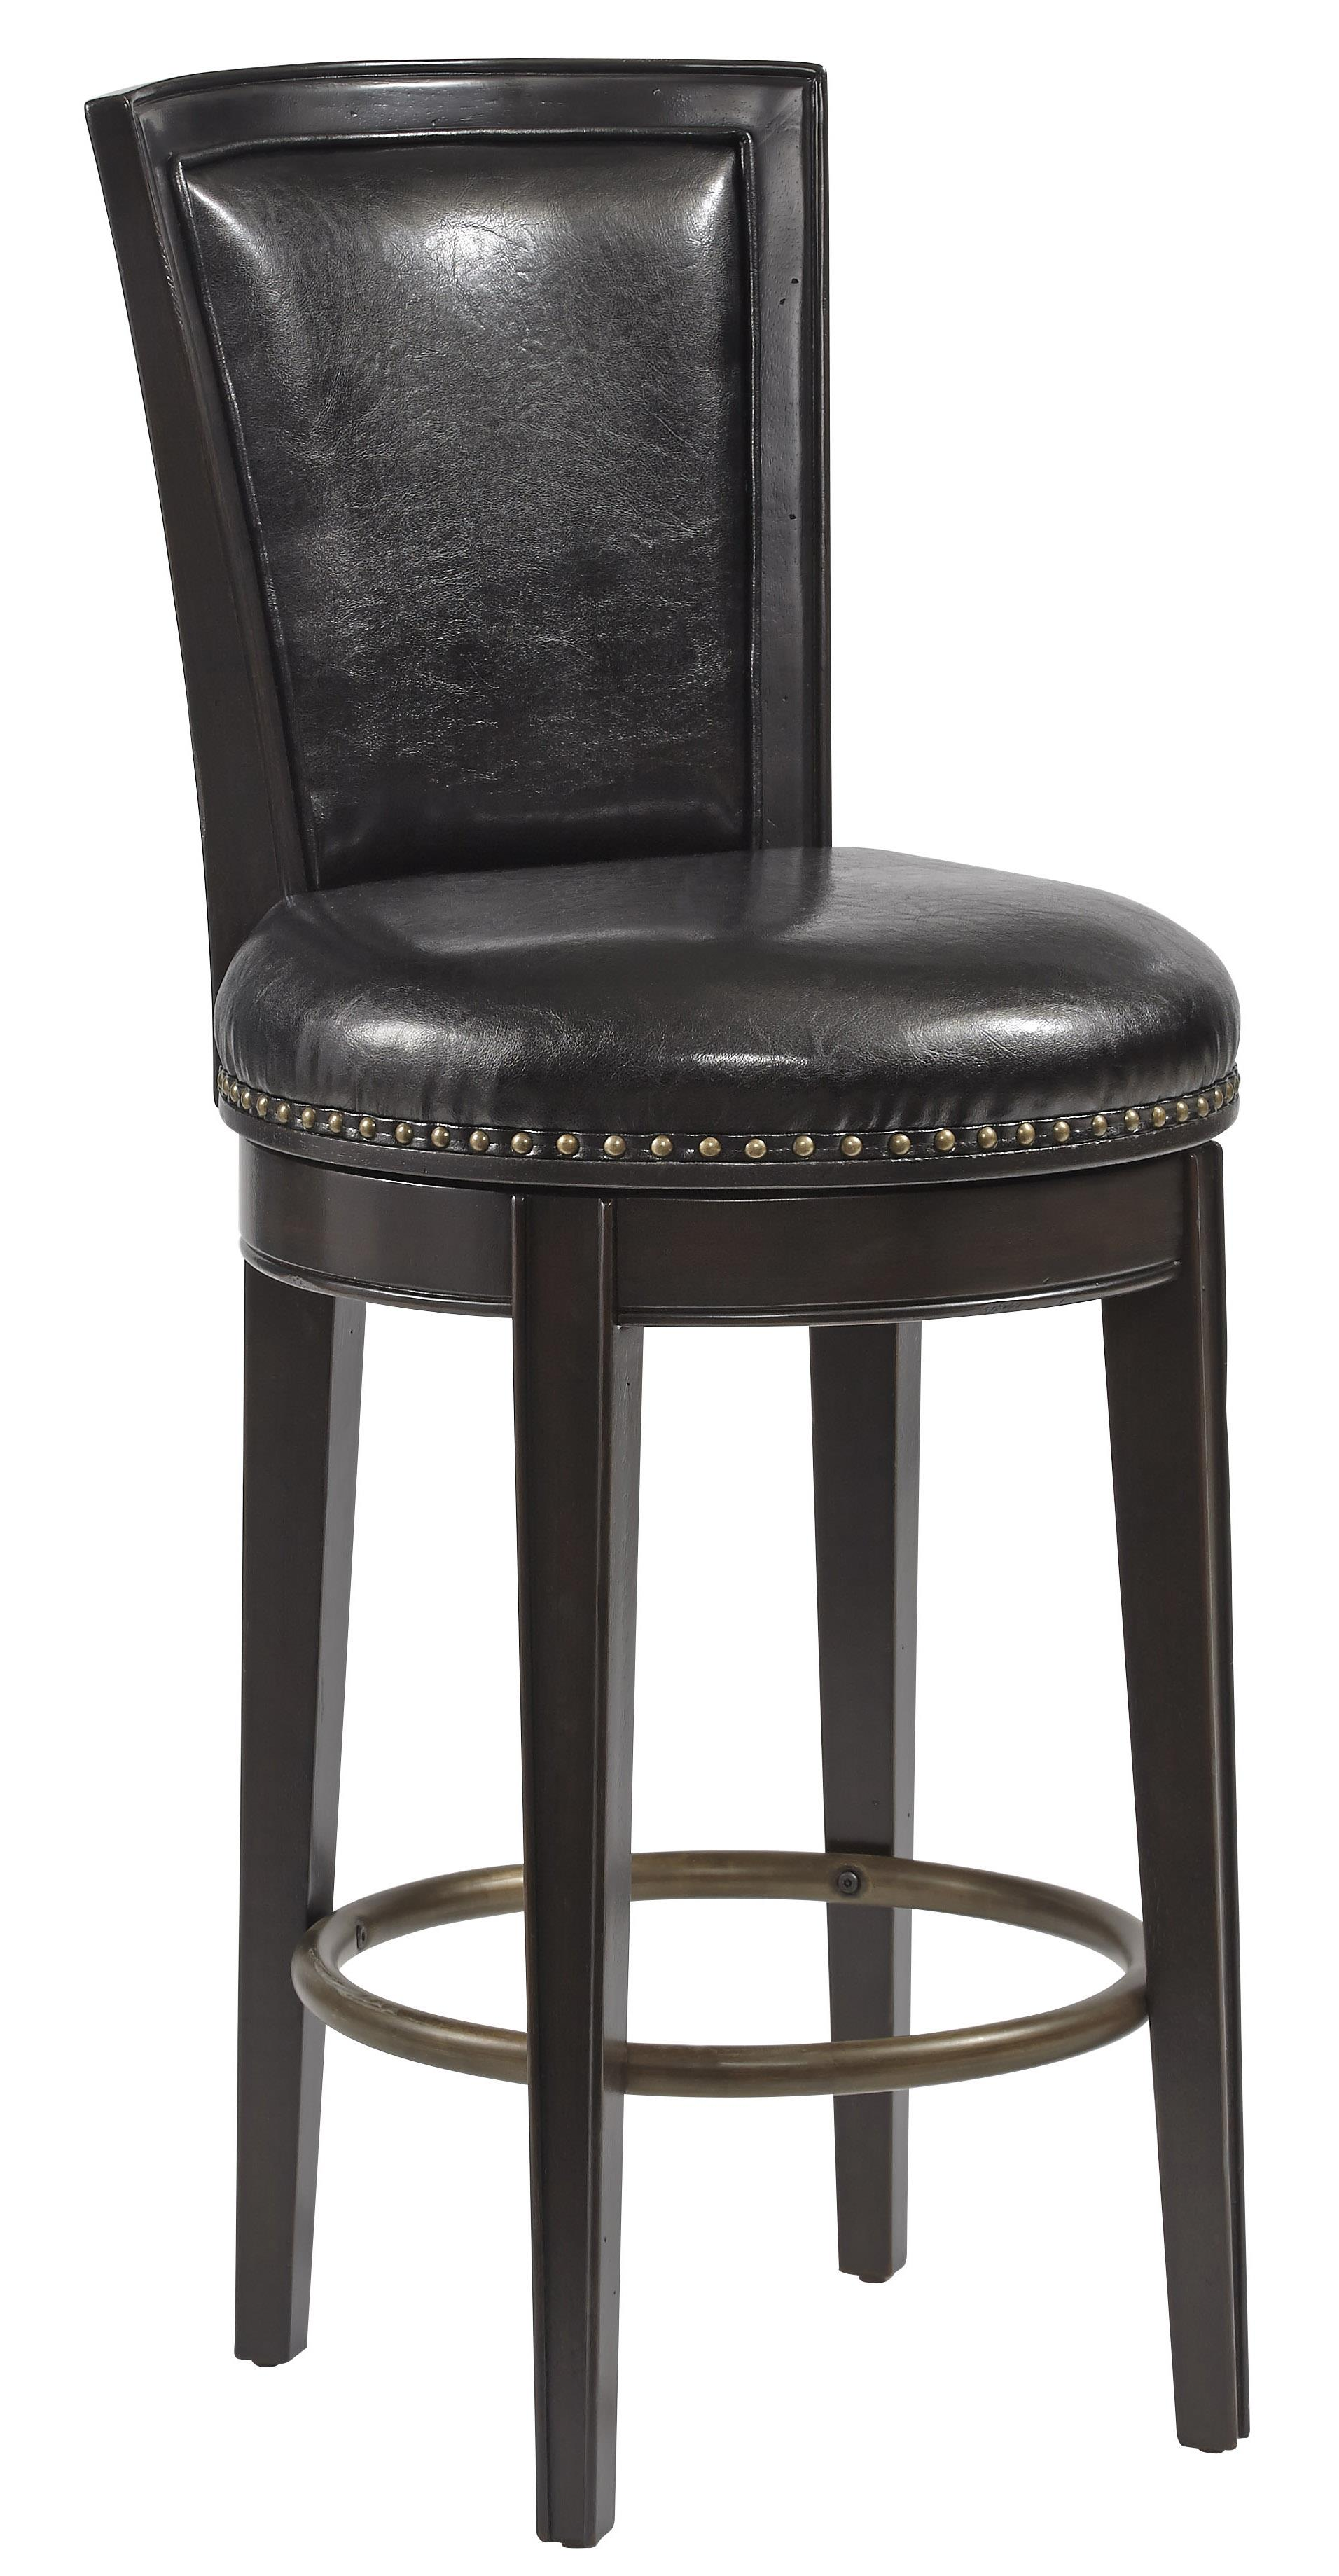 Pulaski Furniture Burton Bar Stool - Item Number: 675905